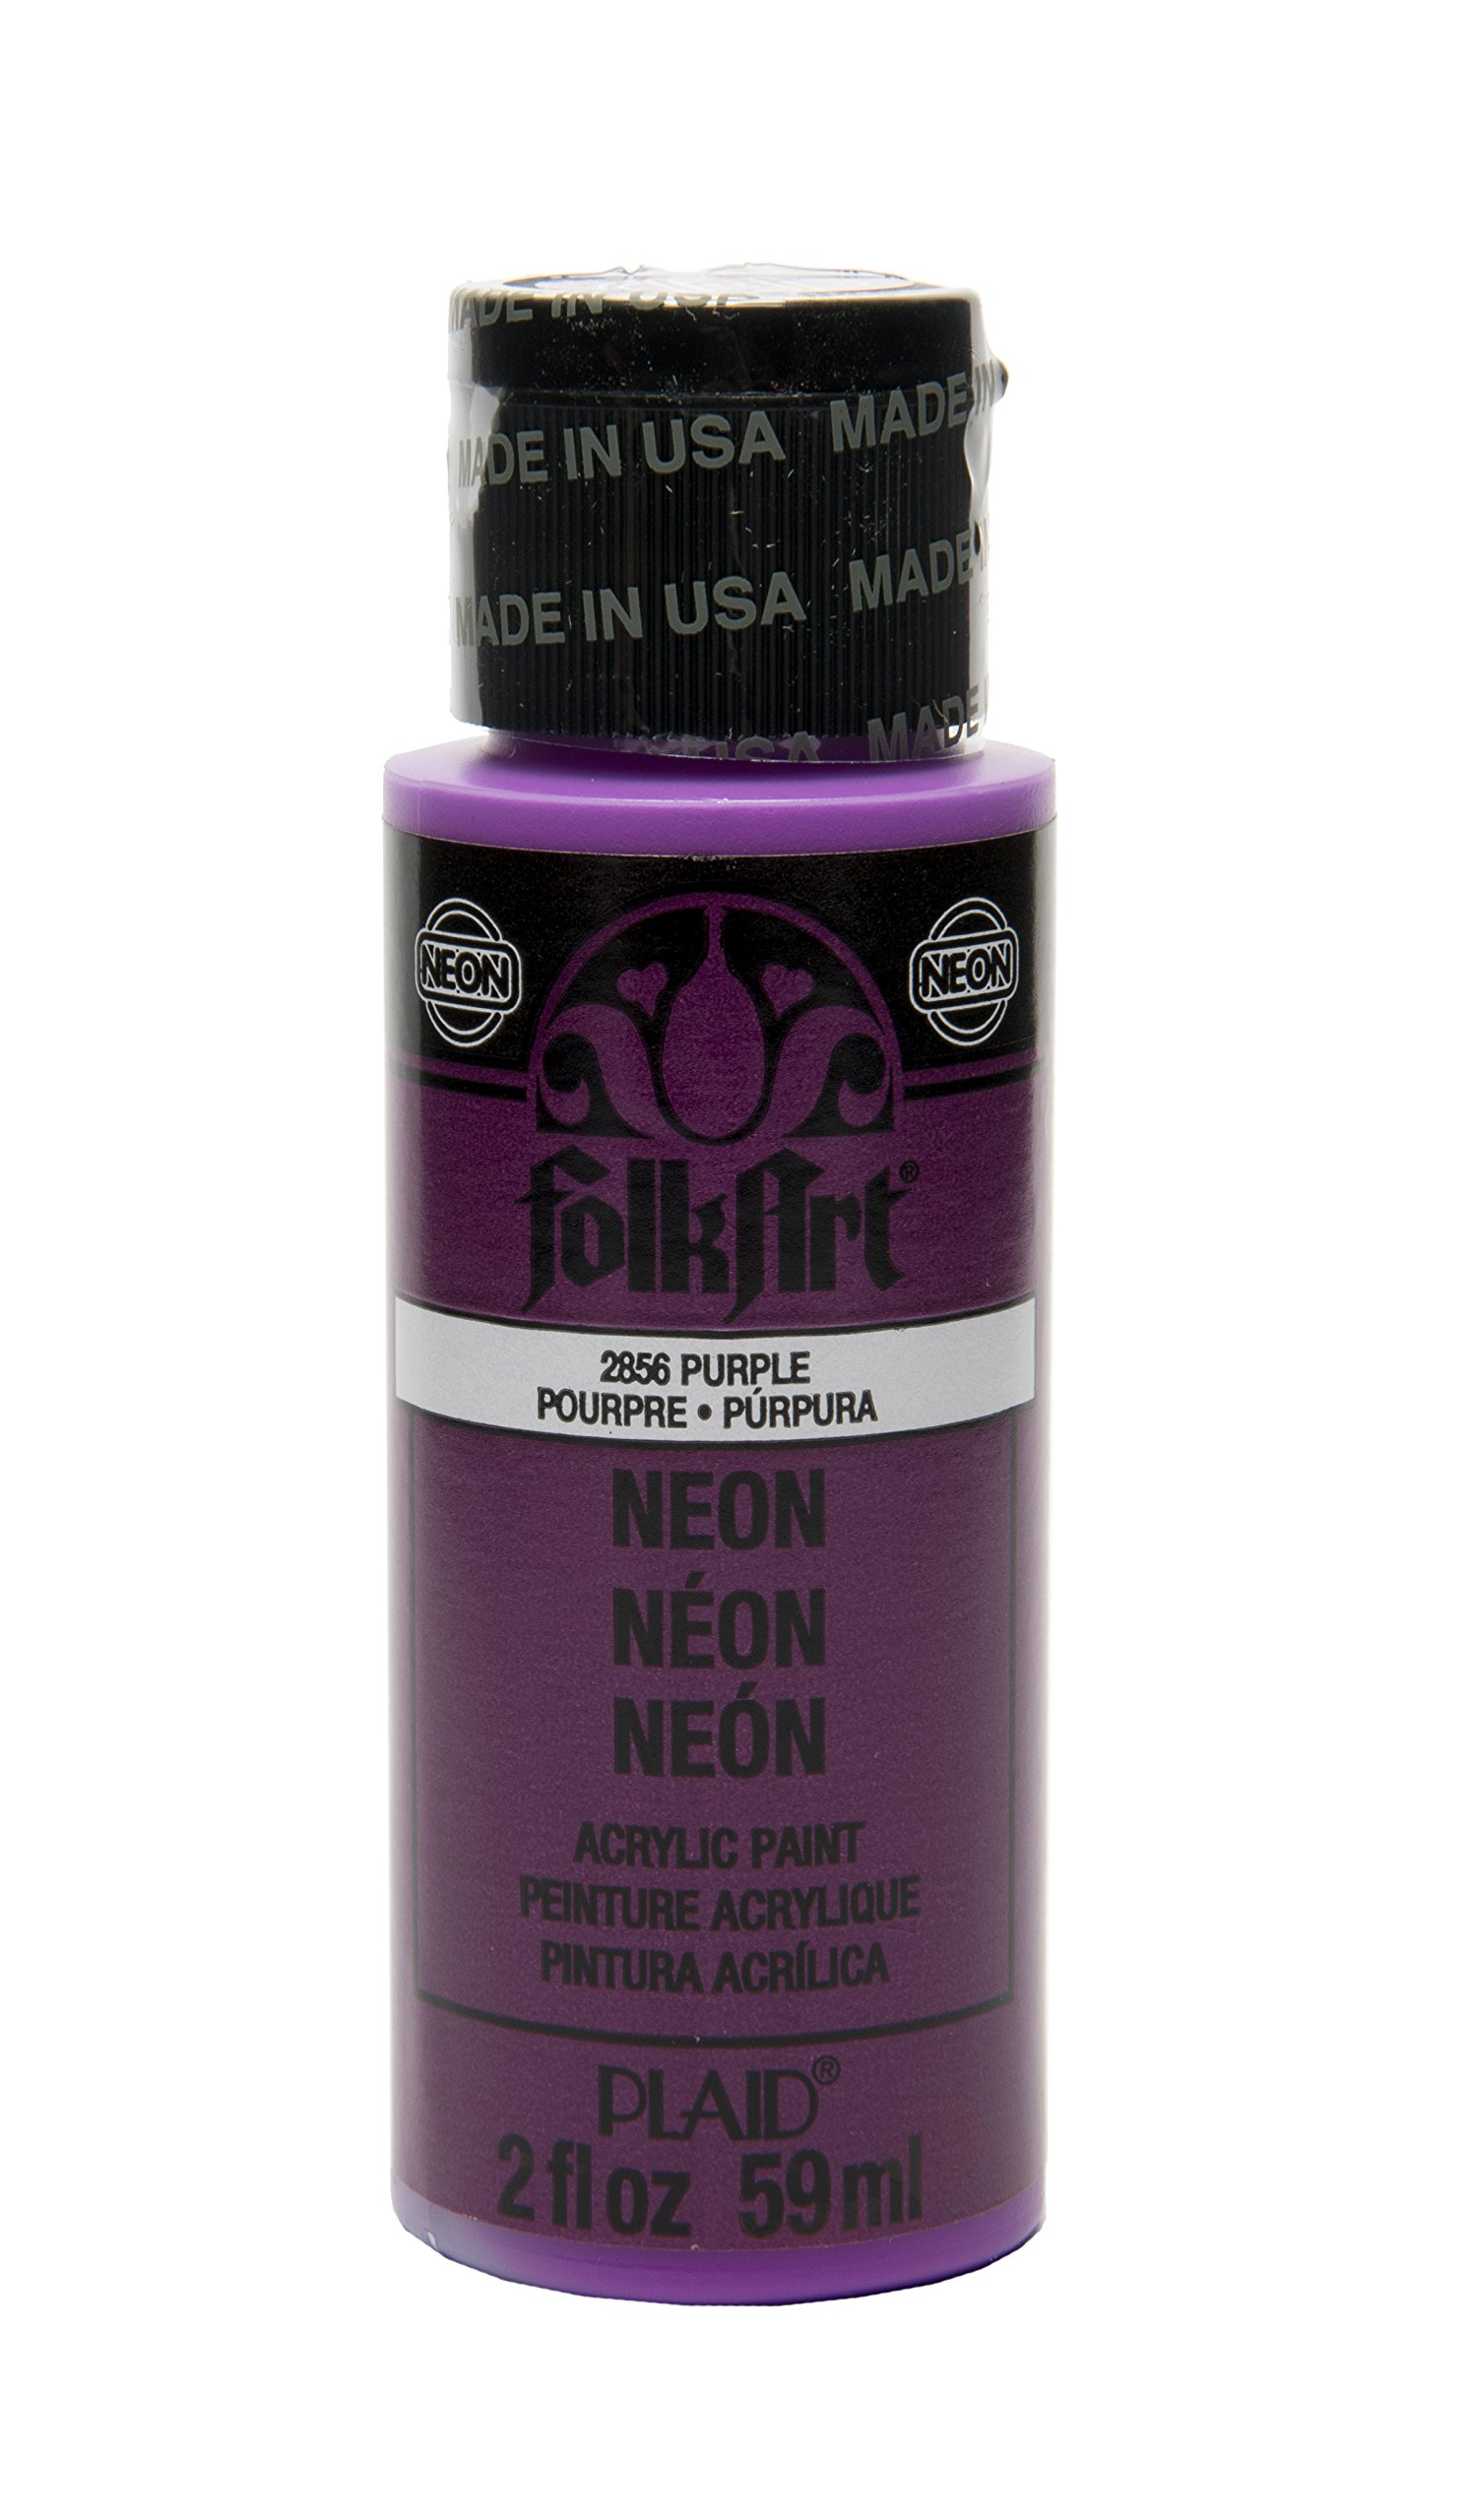 FolkArt Purple Neon Acrylic Paint in Assorted Colors (2 Ounce), 2856